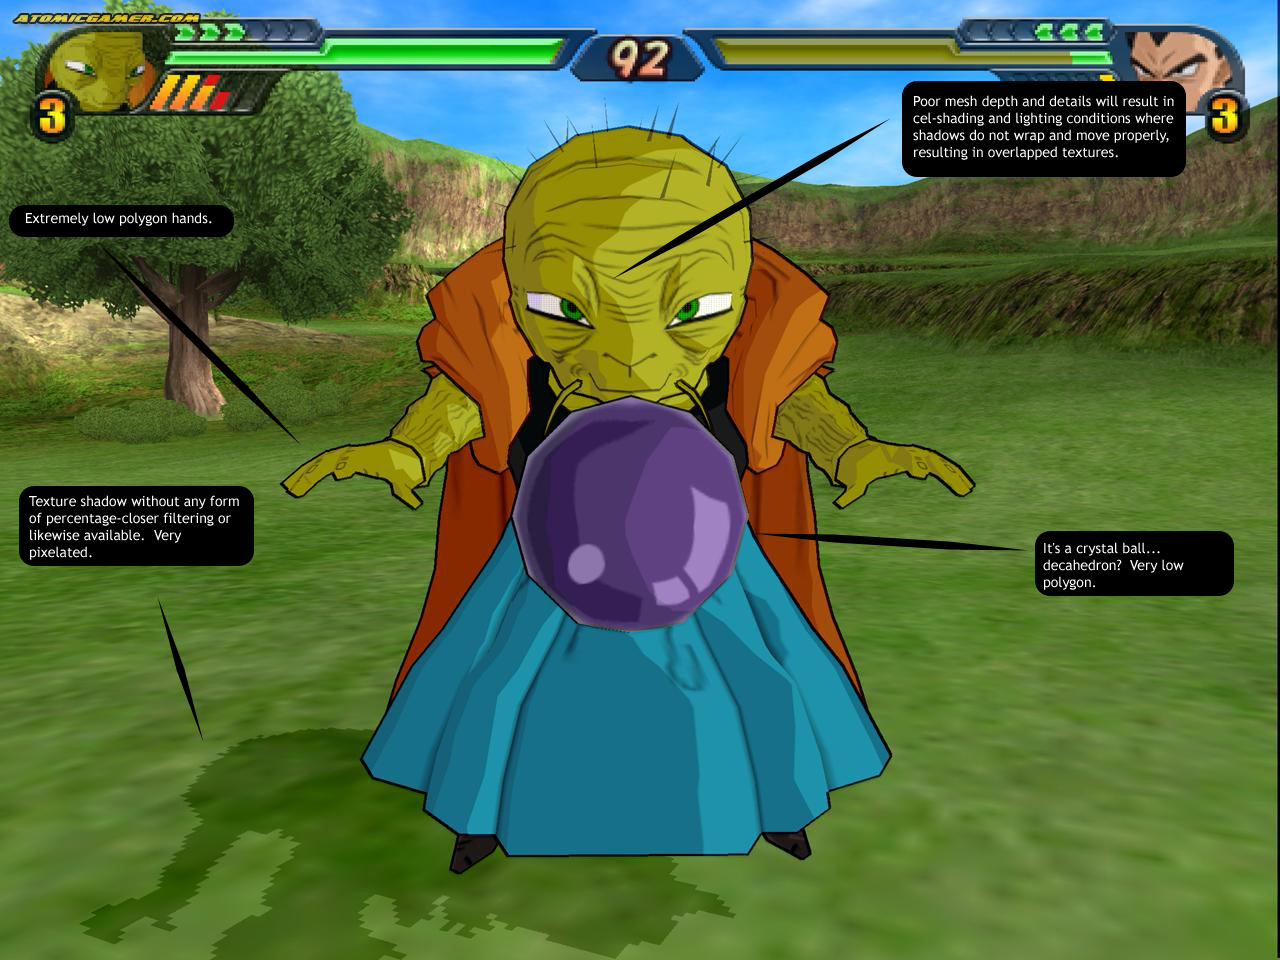 Dragon Ball Z Sparking Meteor Ps2 Iso Game Image Apartment